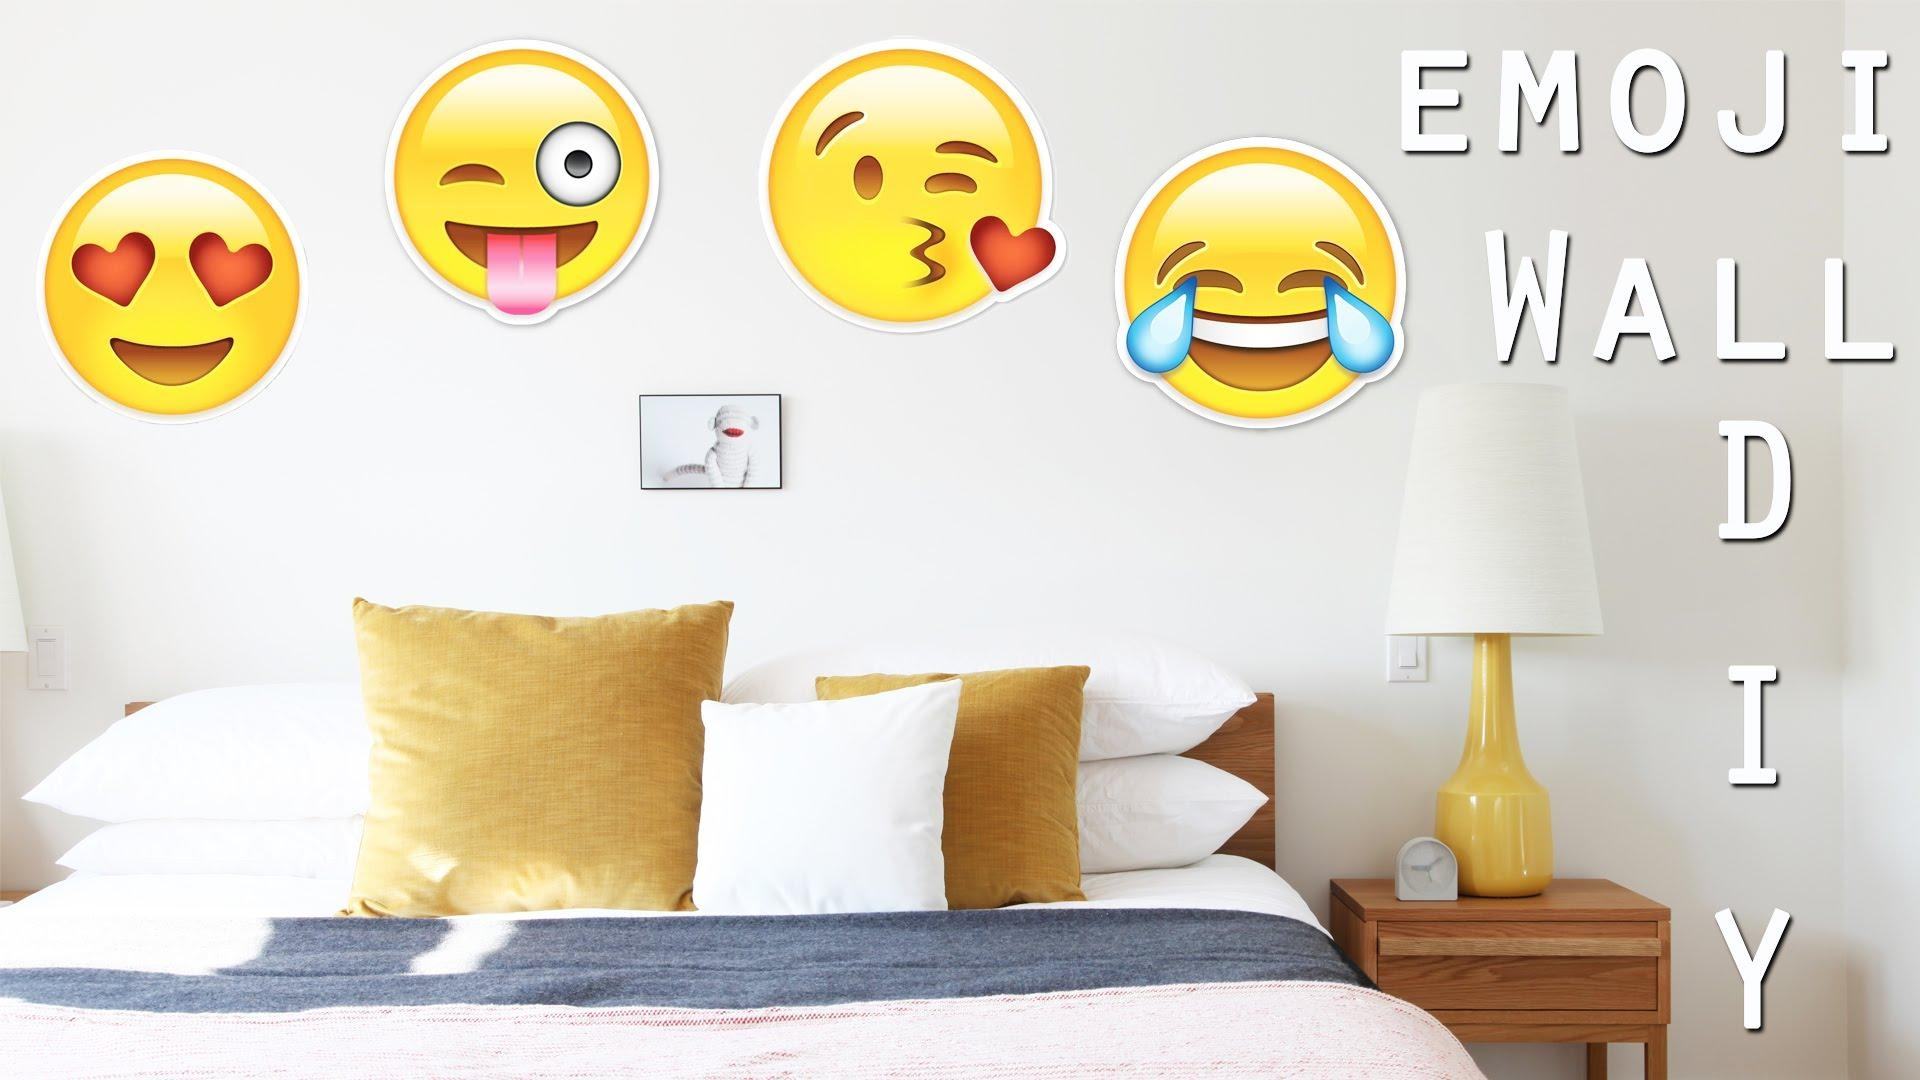 Diy: Emoji Wall Decor | Paper Emoji | Super Easy Diy With Dianata Inside Emoji Wall Art (Image 10 of 20)